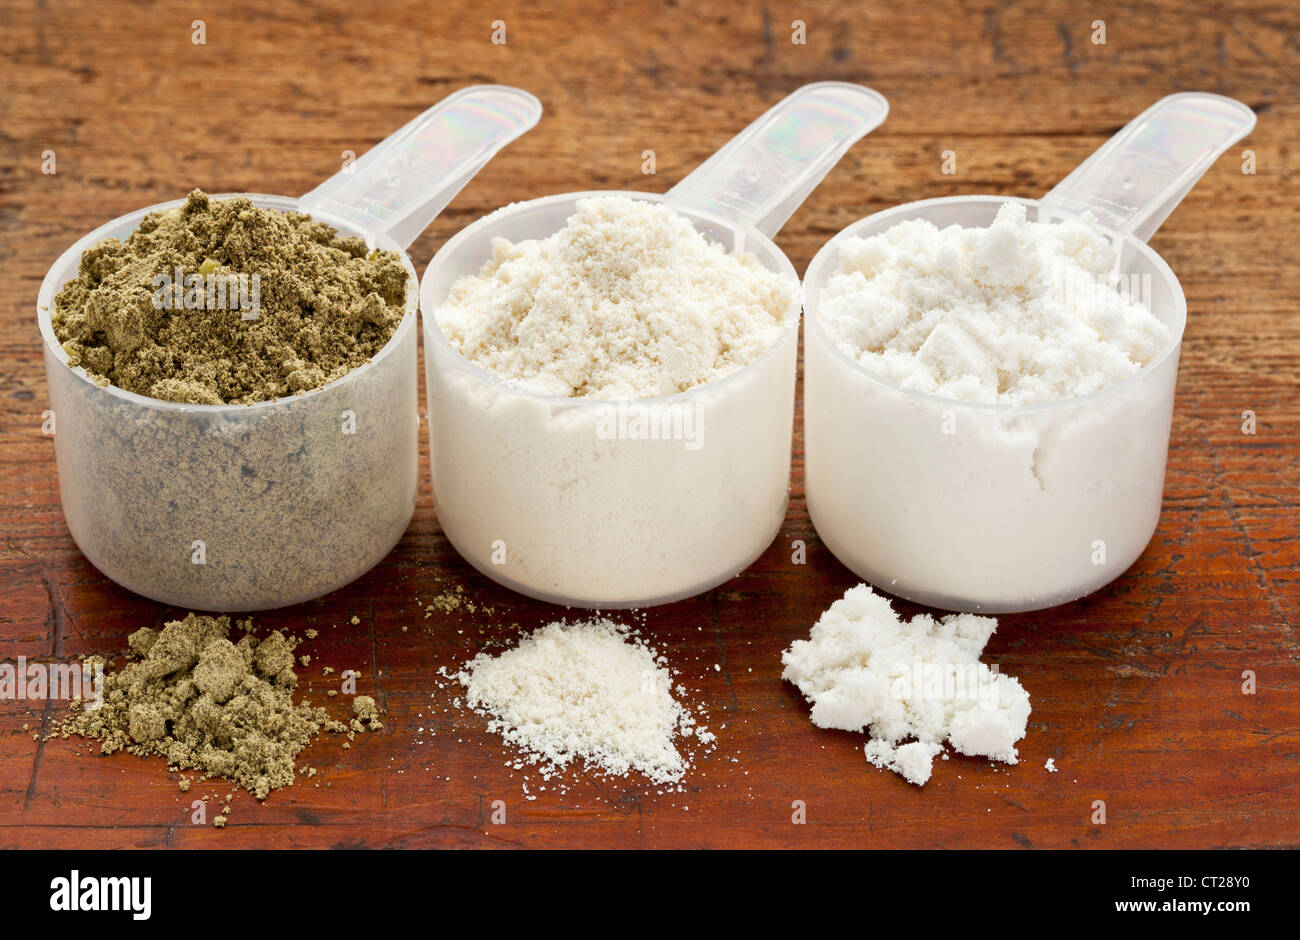 plastic measuring scoops of three protein powders (from left hemp seed, whey concentrate, whey isolate) on a grunge - Stock Image